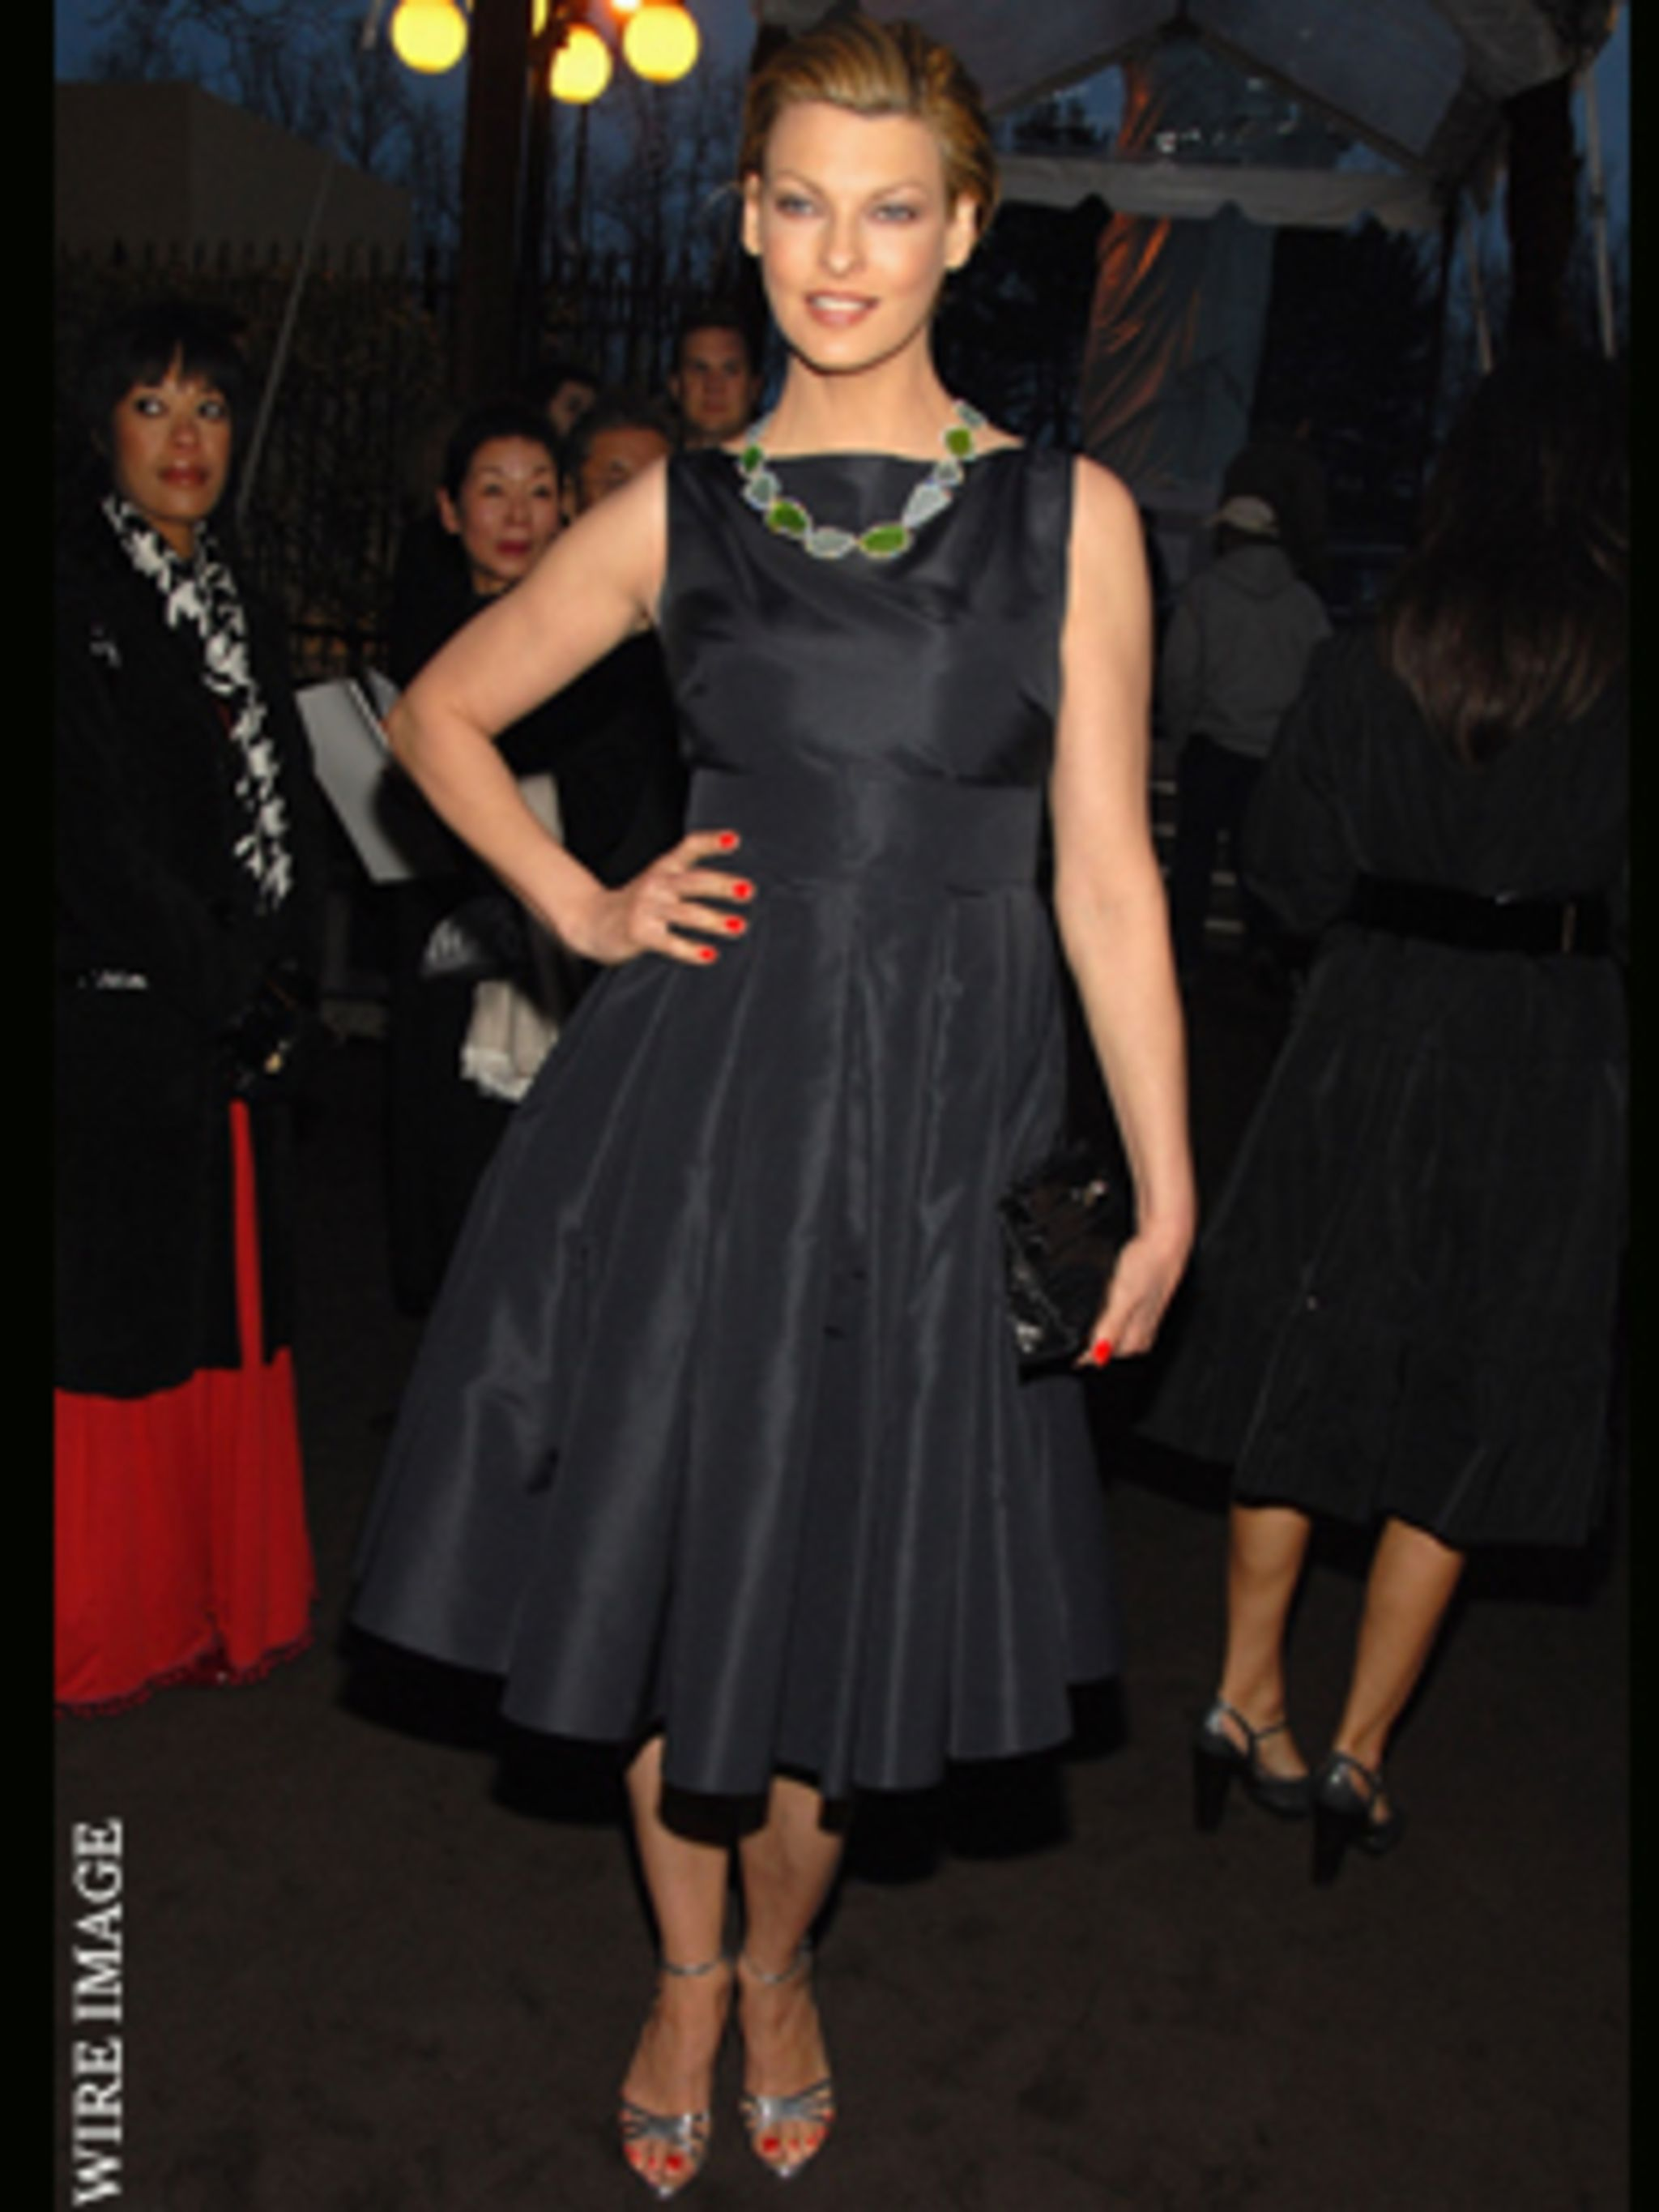 <p>Linda (now a mum of two!) shines on the red carpet at a Louis Vuitton event in New York</p>